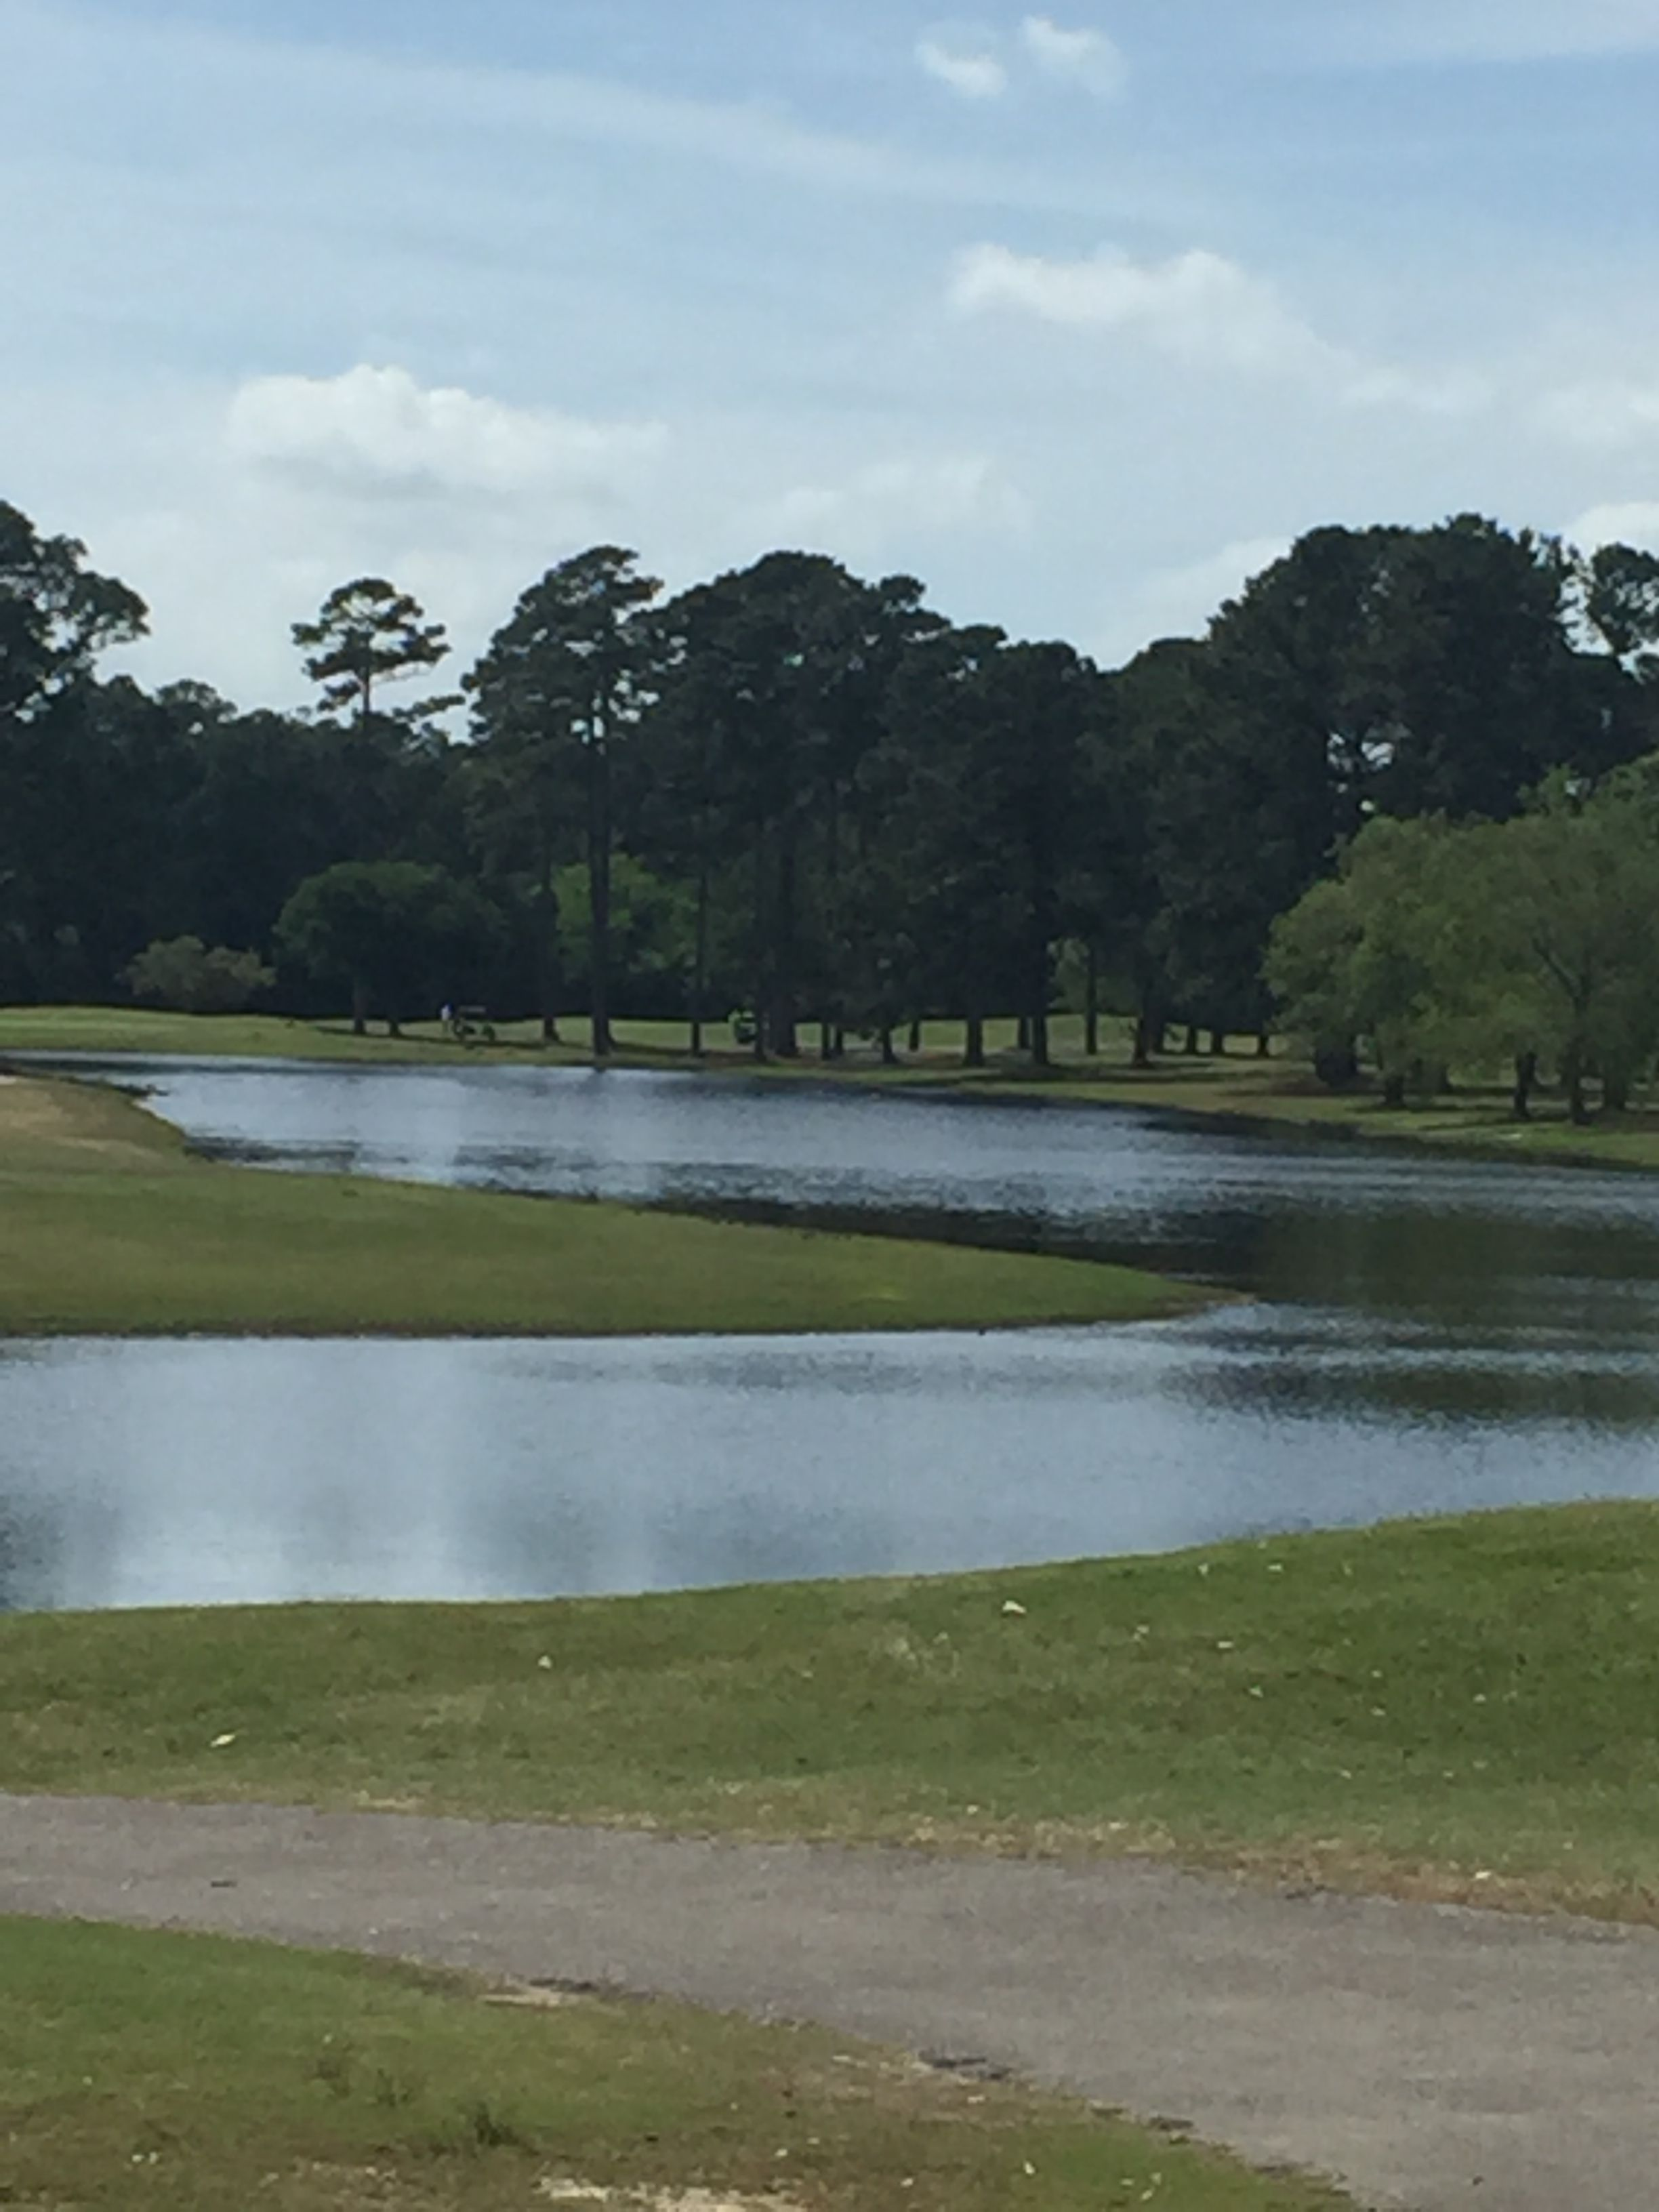 Seventh Hole Whispering Pines Myrtle Beach 2019 Myrtle Beach Golf Courses Outdoor